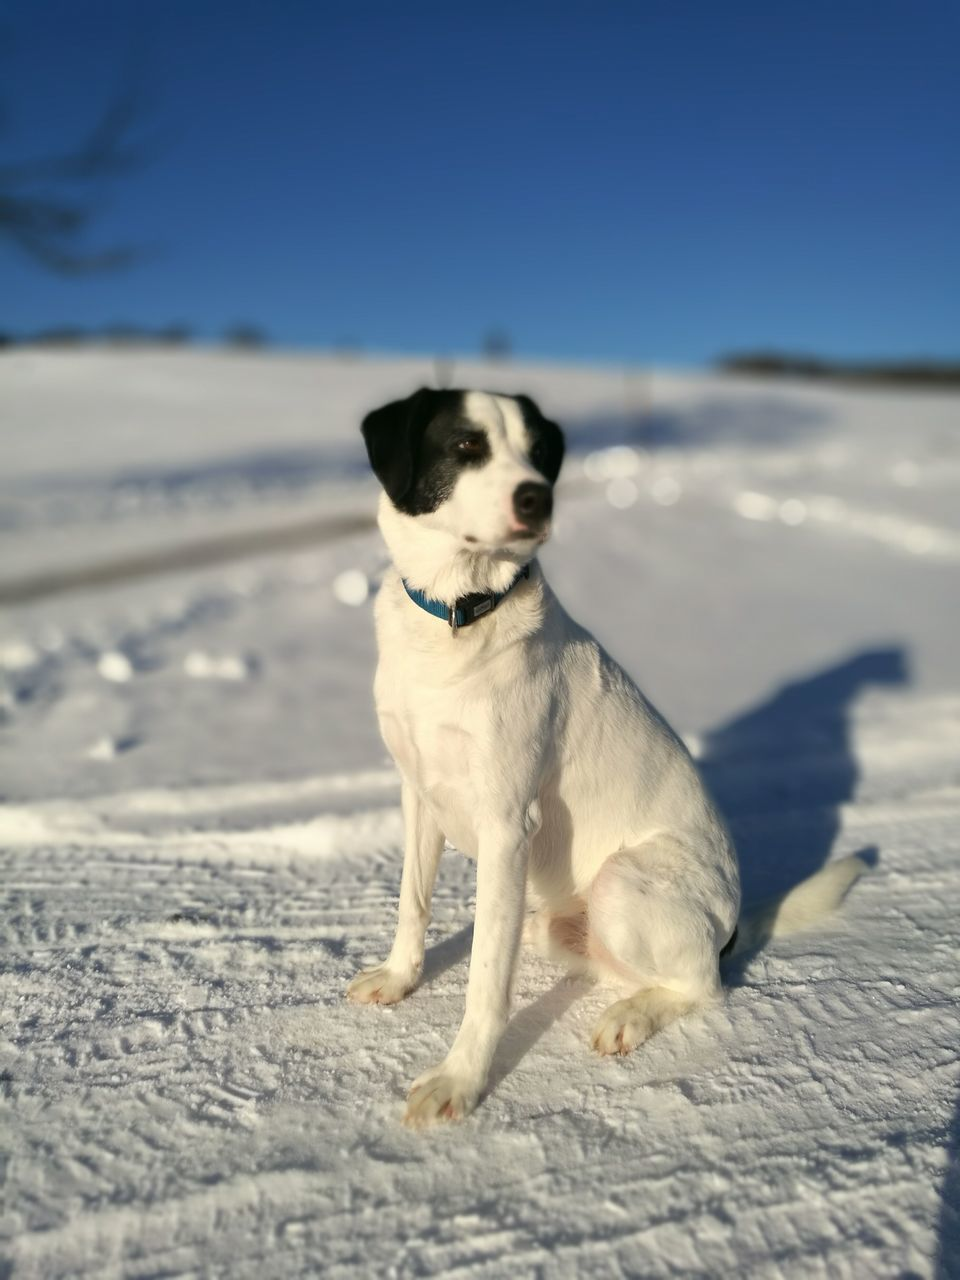 dog, pets, domestic animals, one animal, animal themes, mammal, beach, sand, outdoors, nature, sunlight, no people, day, winter, full length, sitting, snow